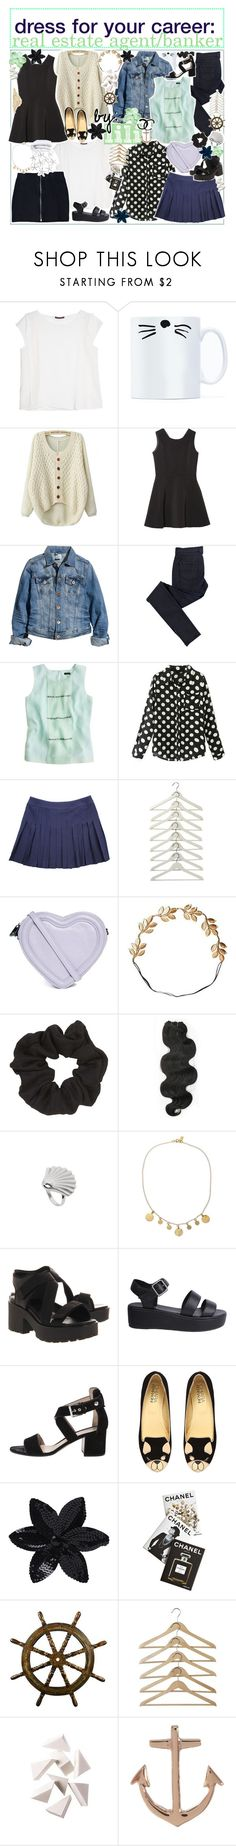 """☼; dress for your career: real estate agent/banker"" by ocean-clique-xo ❤ liked on Polyvore featuring Violeta by Mango, H&M, C.R.A.F.T., J.Crew, Chicnova Fashion, Chanel, ASOS, Eddera, Topshop and &K"